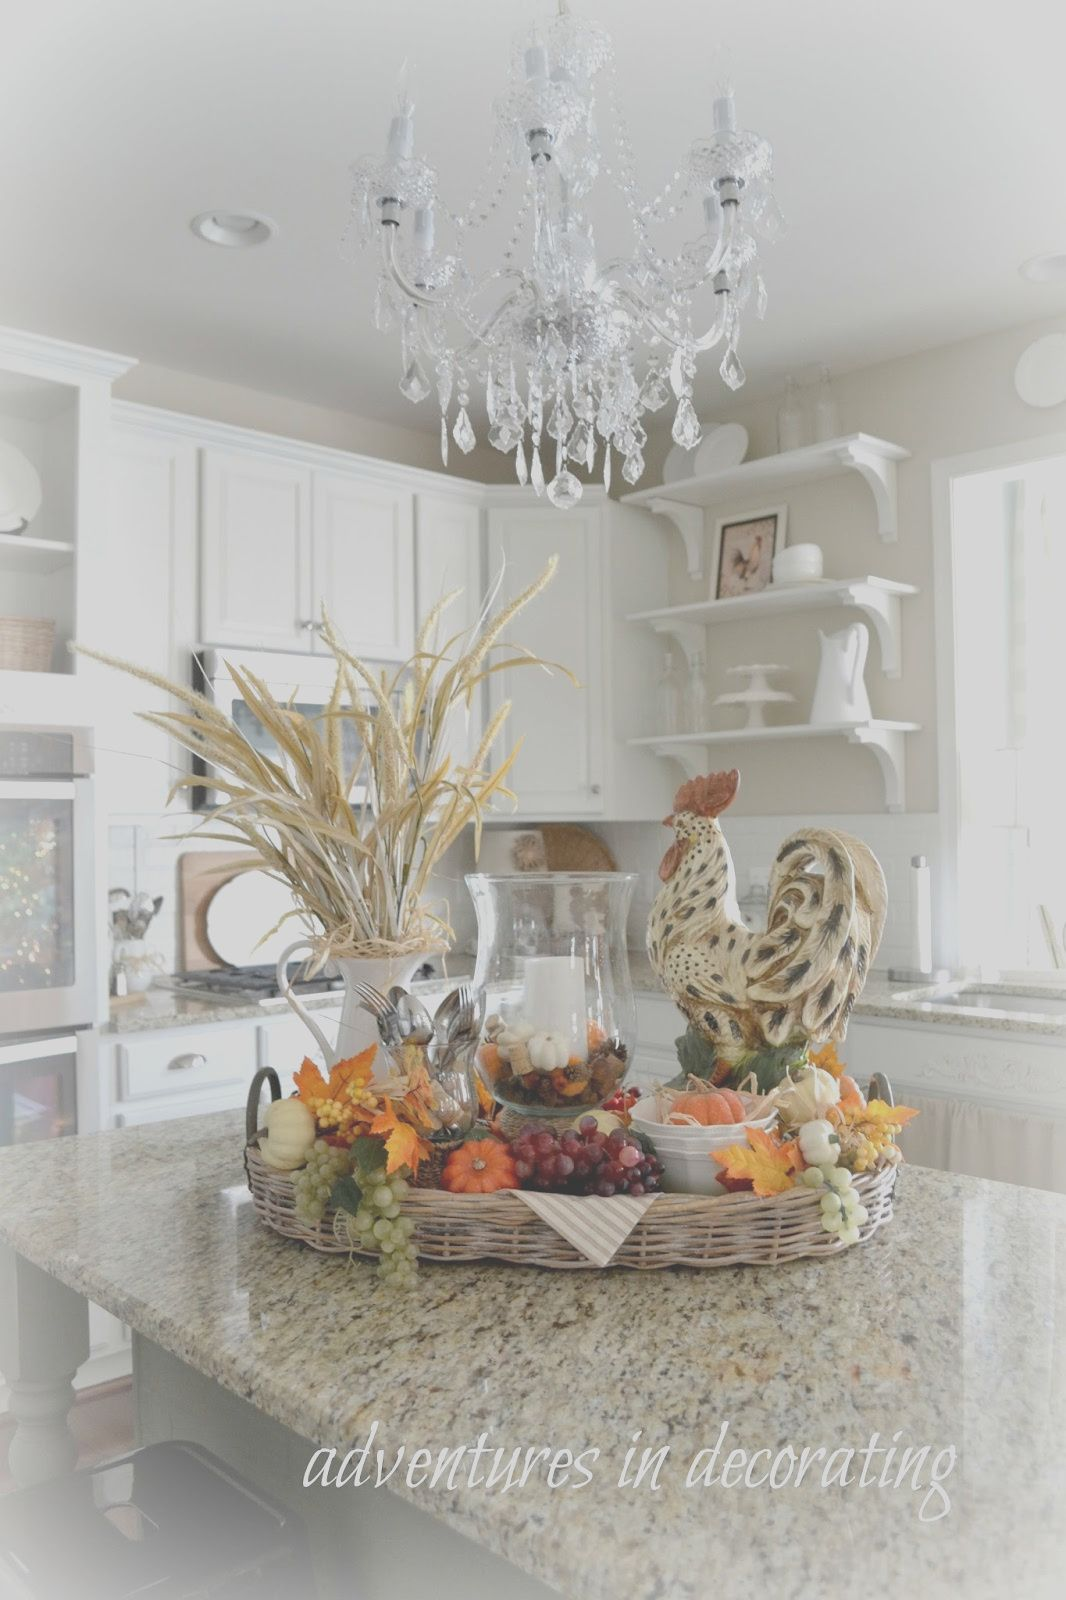 how to decorate a kitchen island for fall